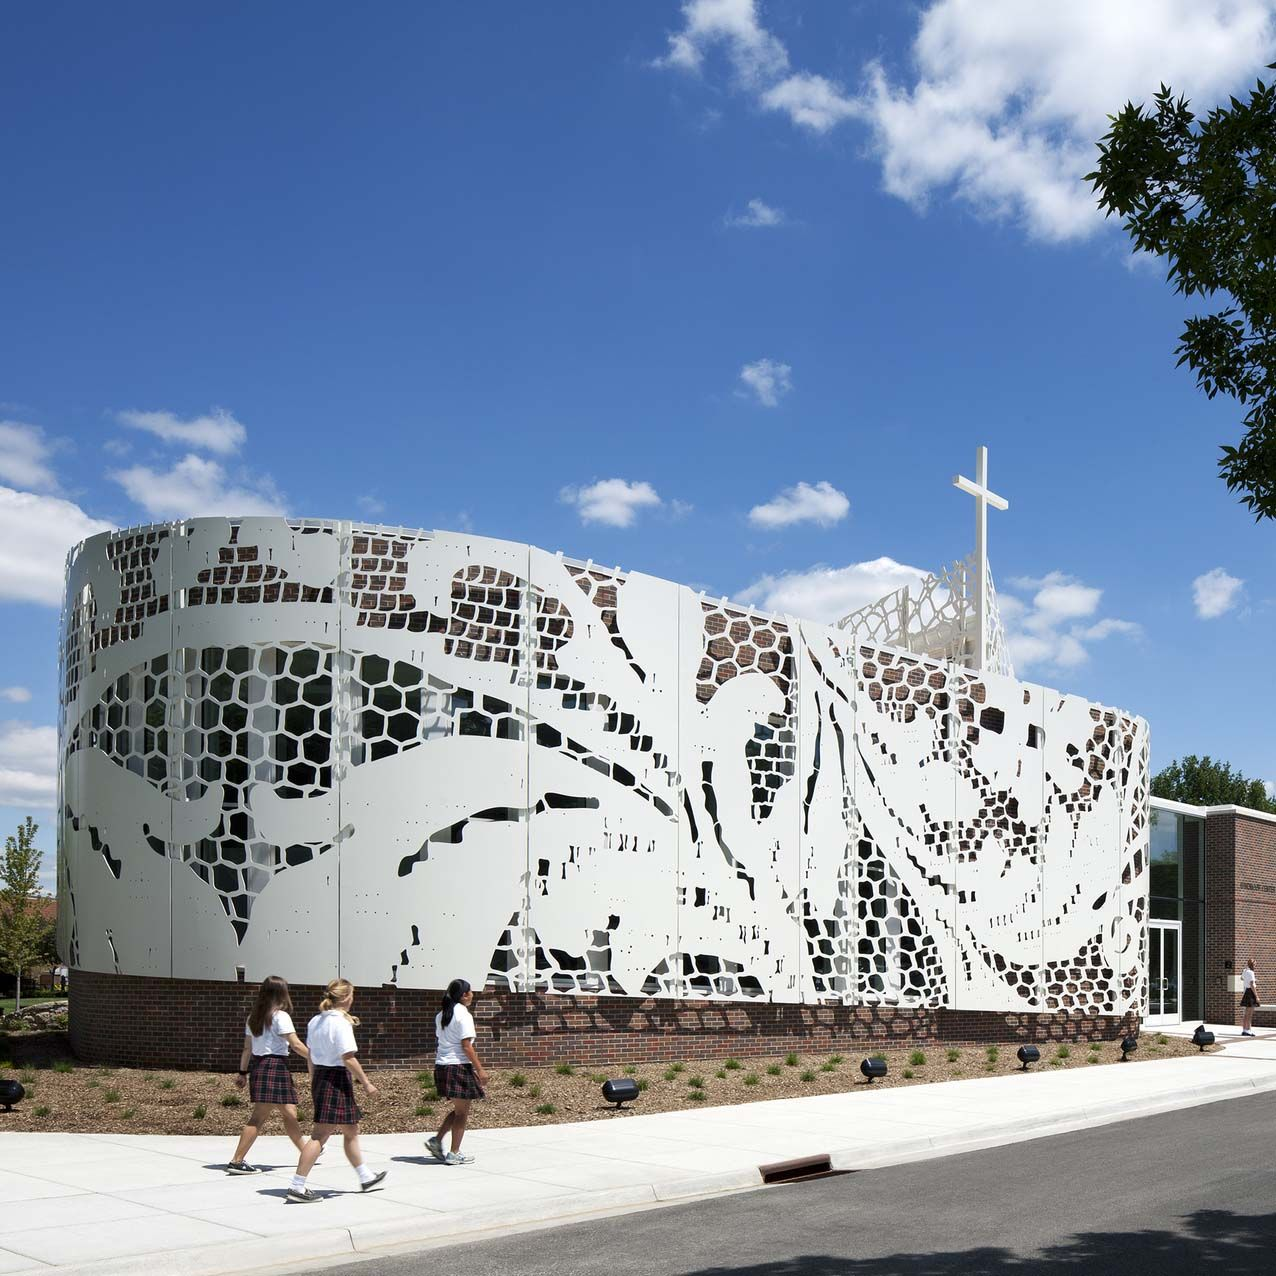 St Teresa's Academy Windmoor Center by Gould Evans in Kansas, USA. #morfae #gouldevans #architecture #facades